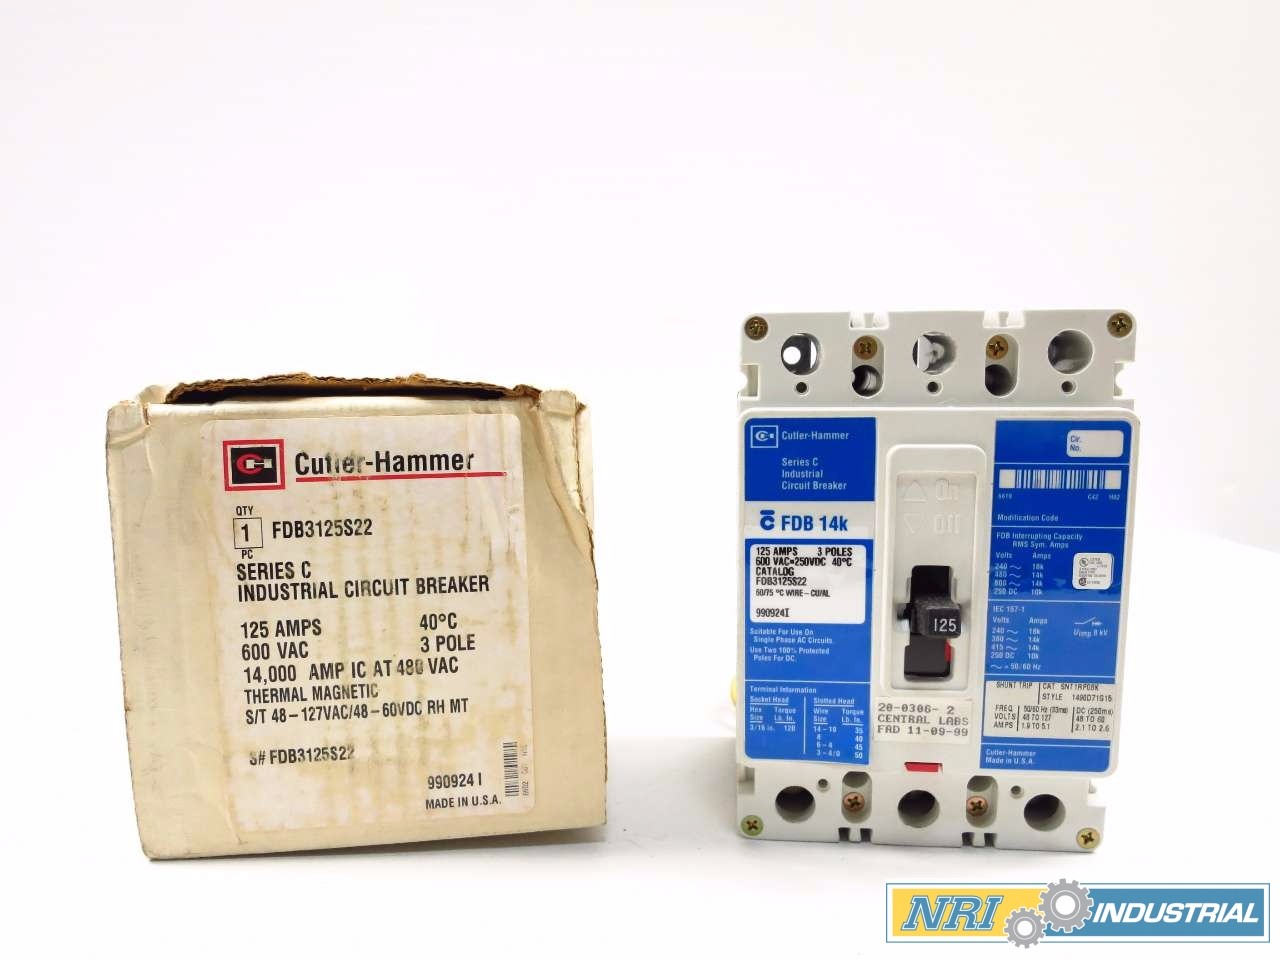 NEW CUTLER HAMMER 125 A CIRCUIT BREAKER